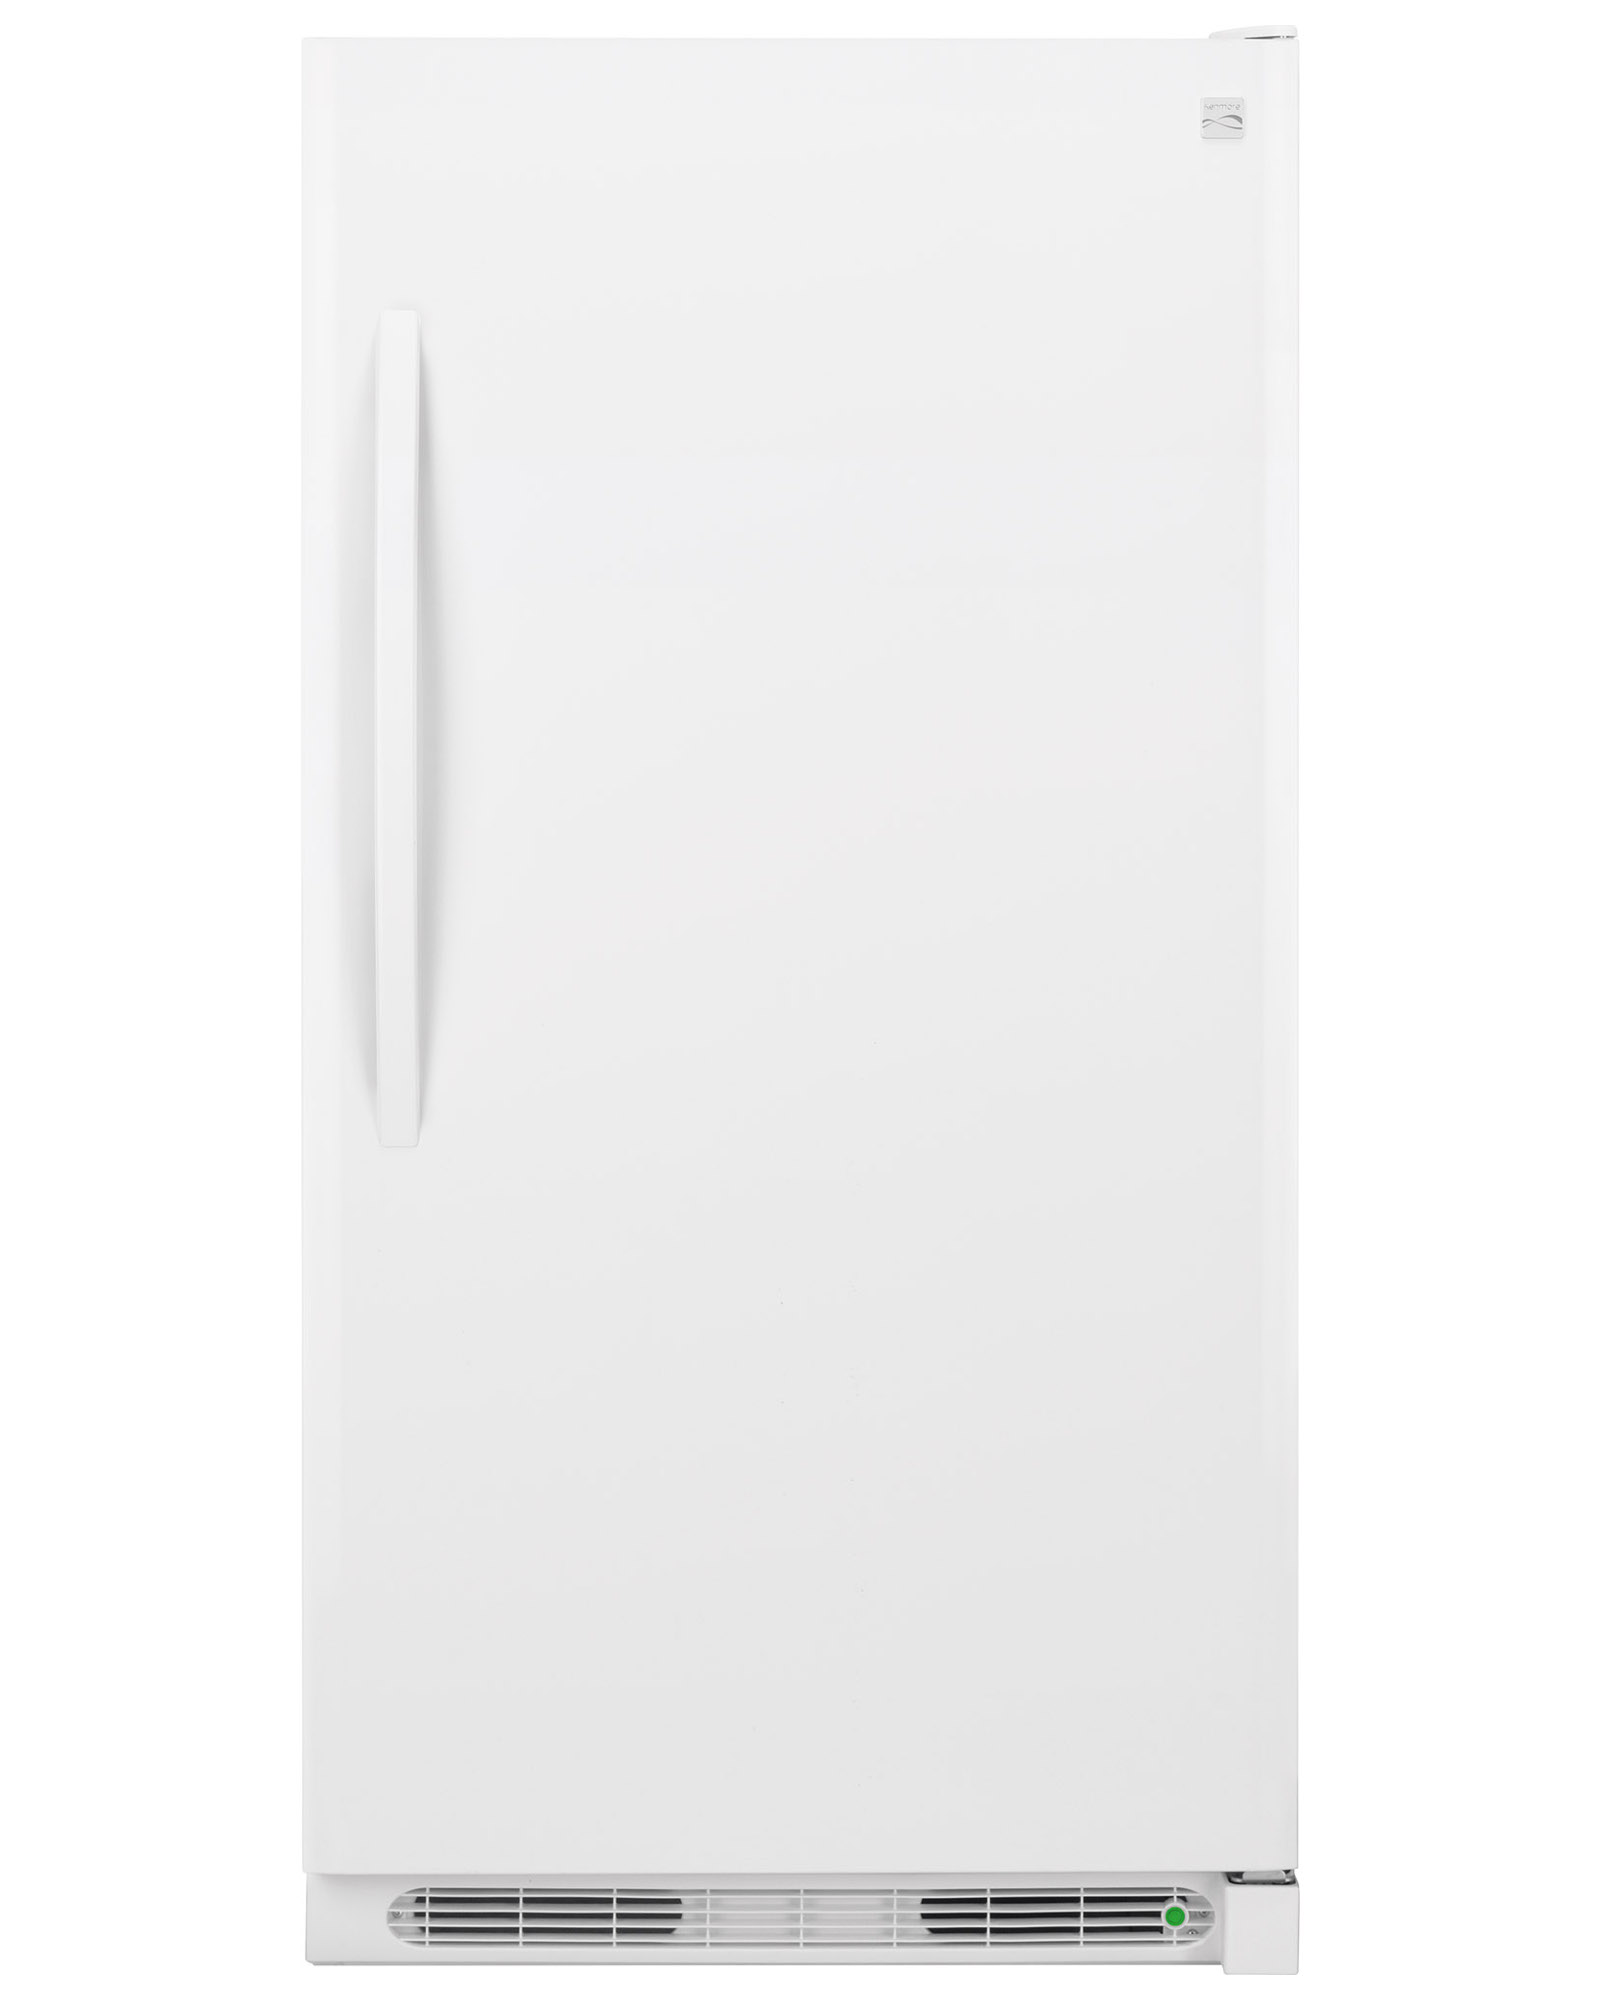 Kenmore 70722 16.7 cu. ft. Freezerless Refrigerator - White